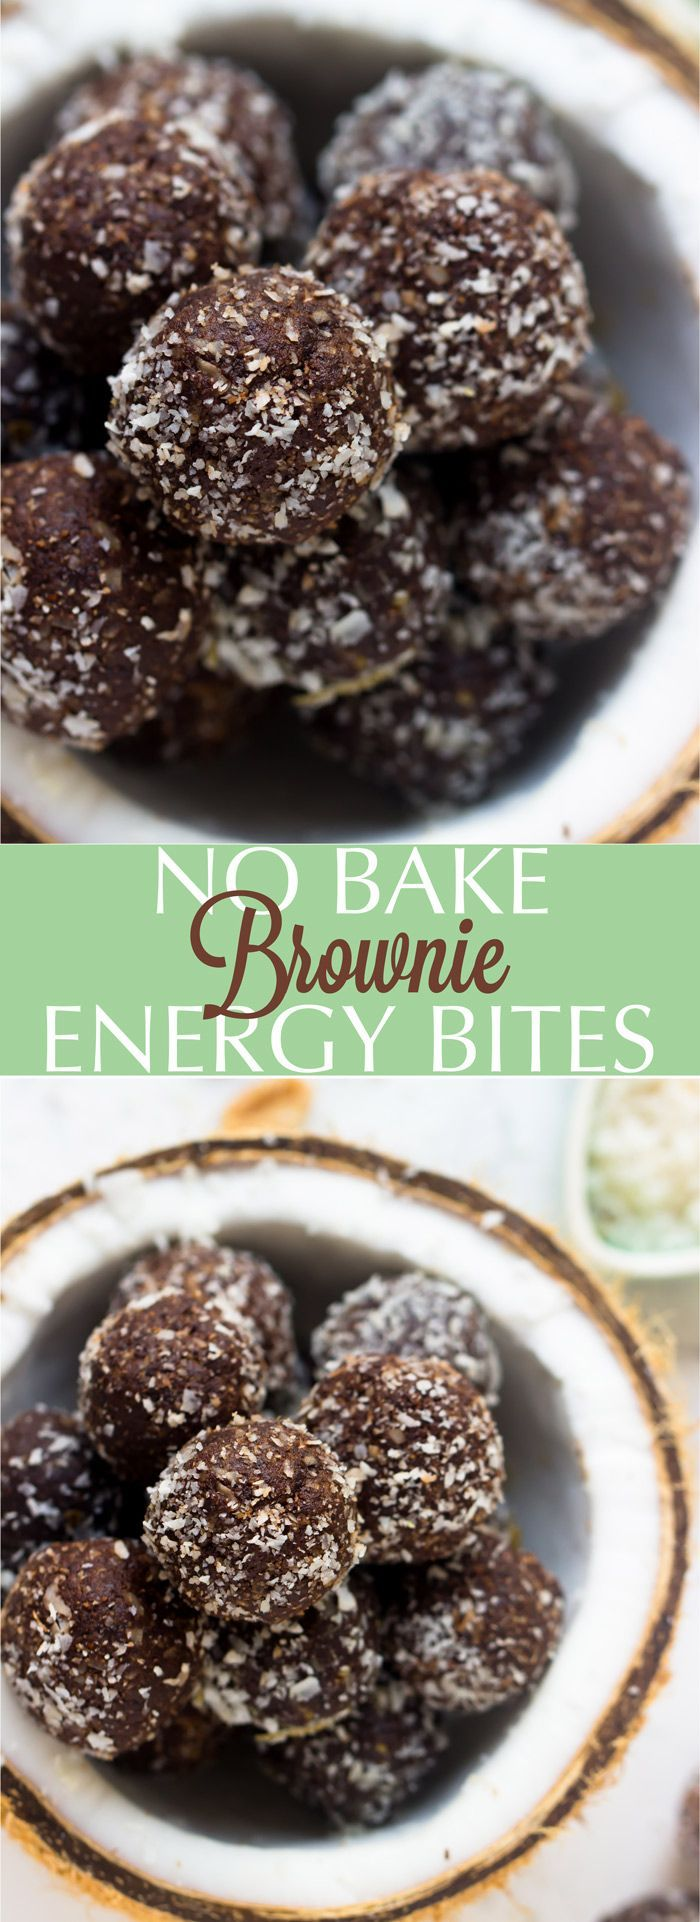 No Bake Brownie Energy Bites are made with only 5 ingredients, vegan and gluten-free and are a perfect quick healthy breakfast or snack! |